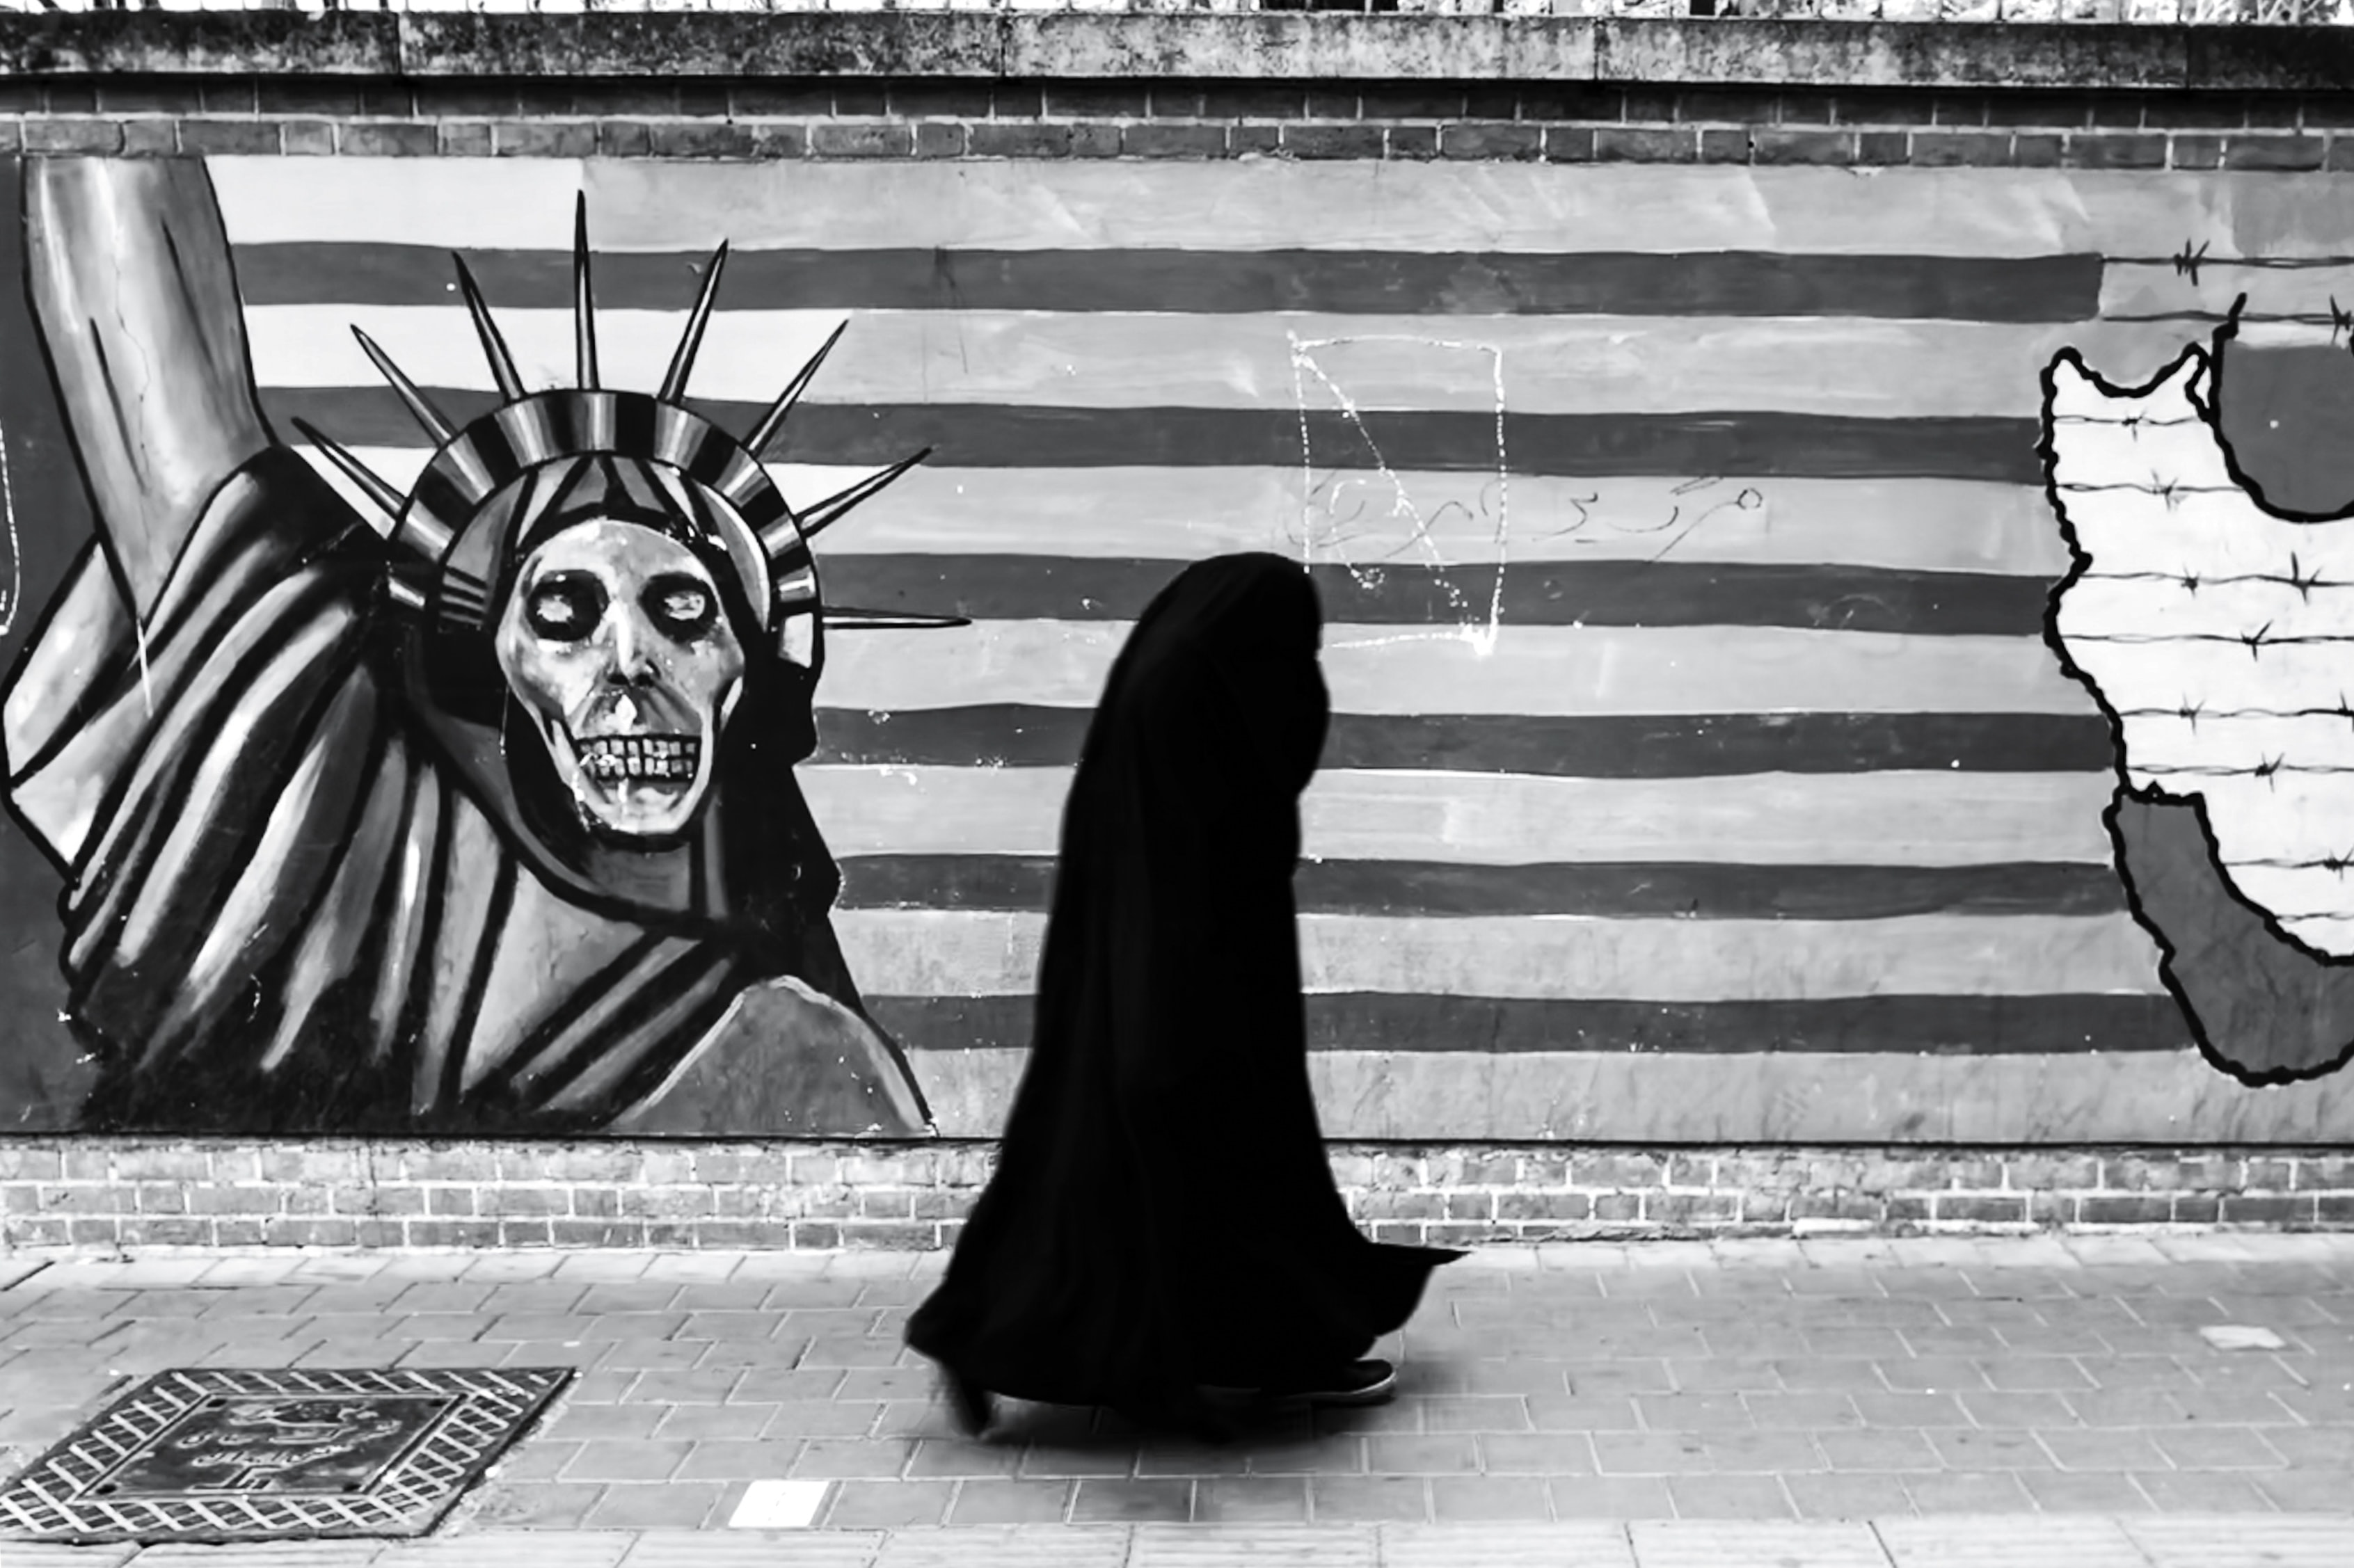 person standing near mural painting